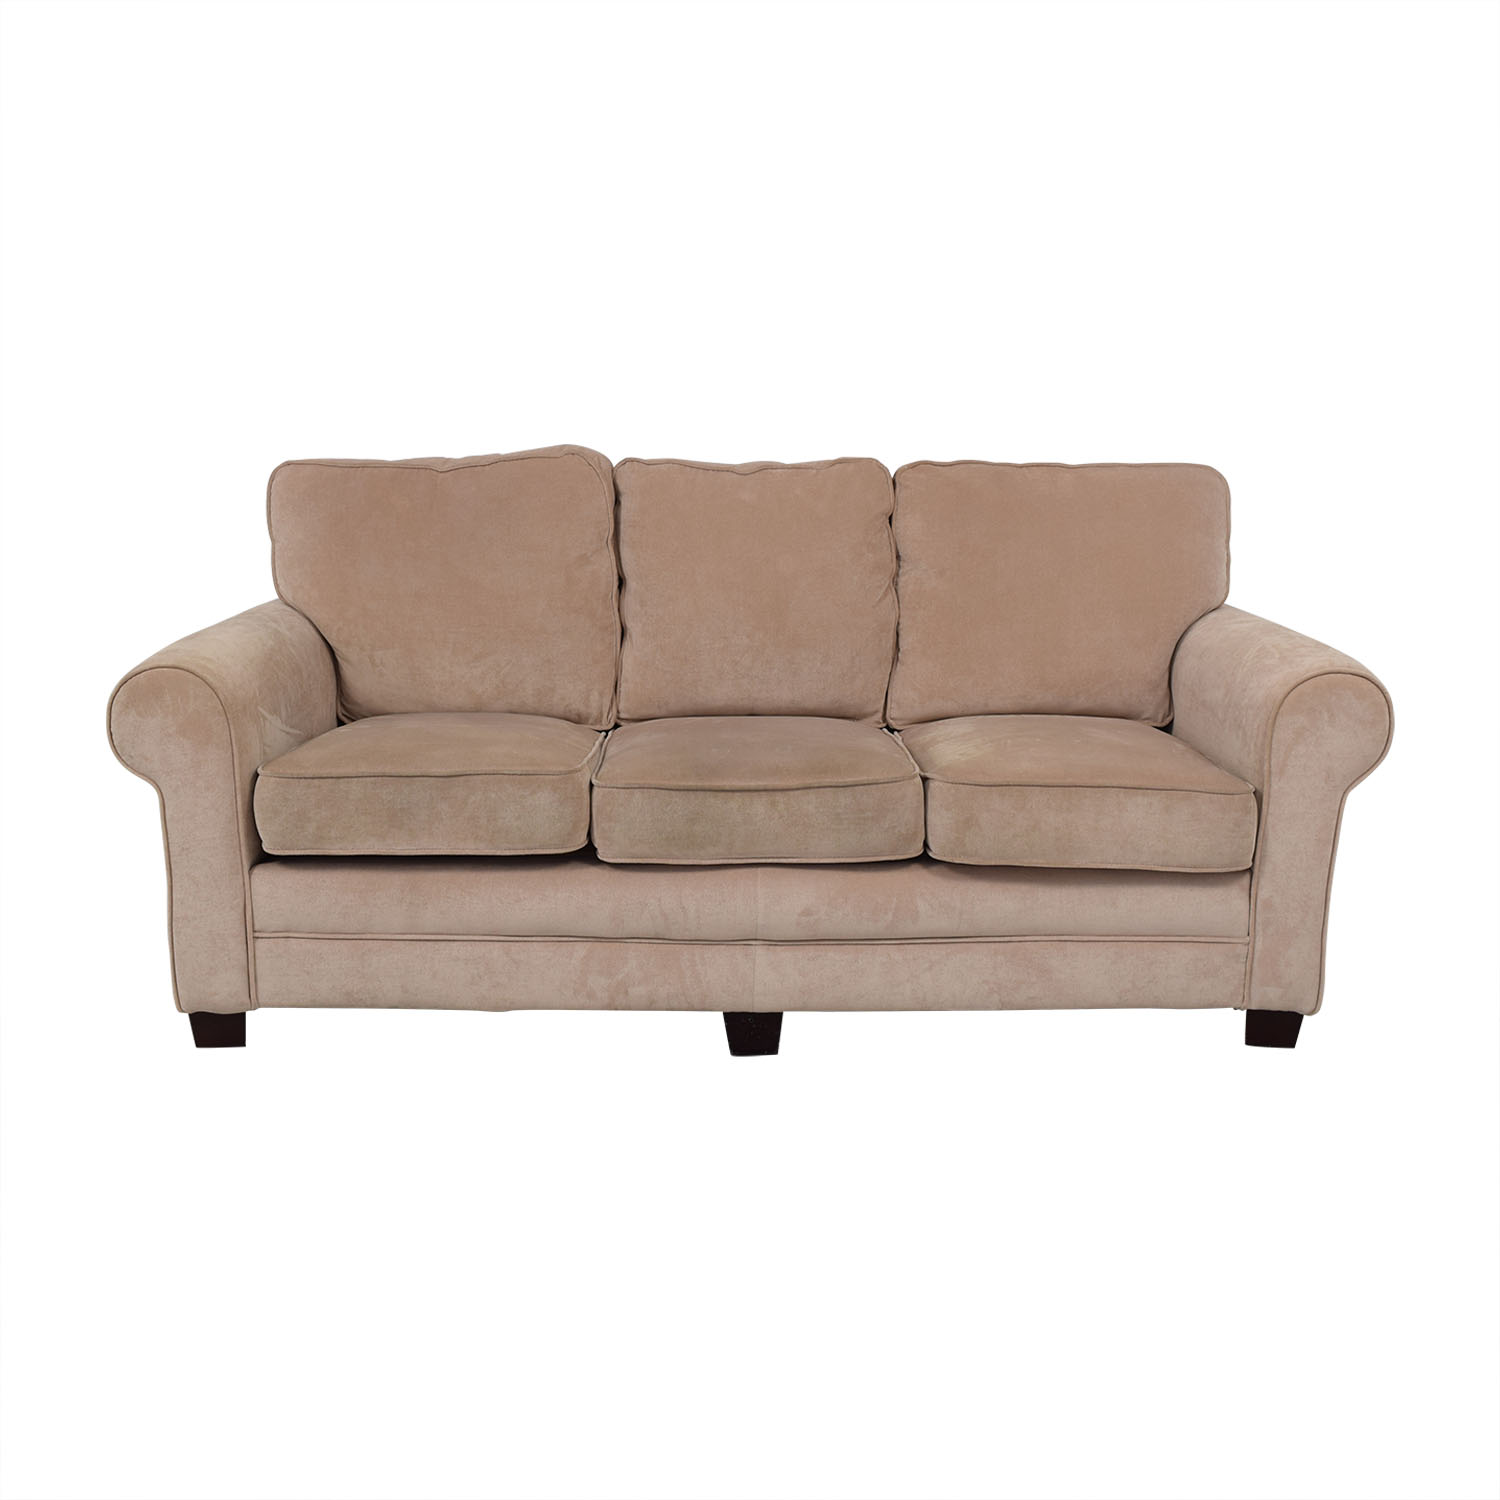 buy Bob's Discount Furniture Three Cushion Sofa Bob's Discount Furniture